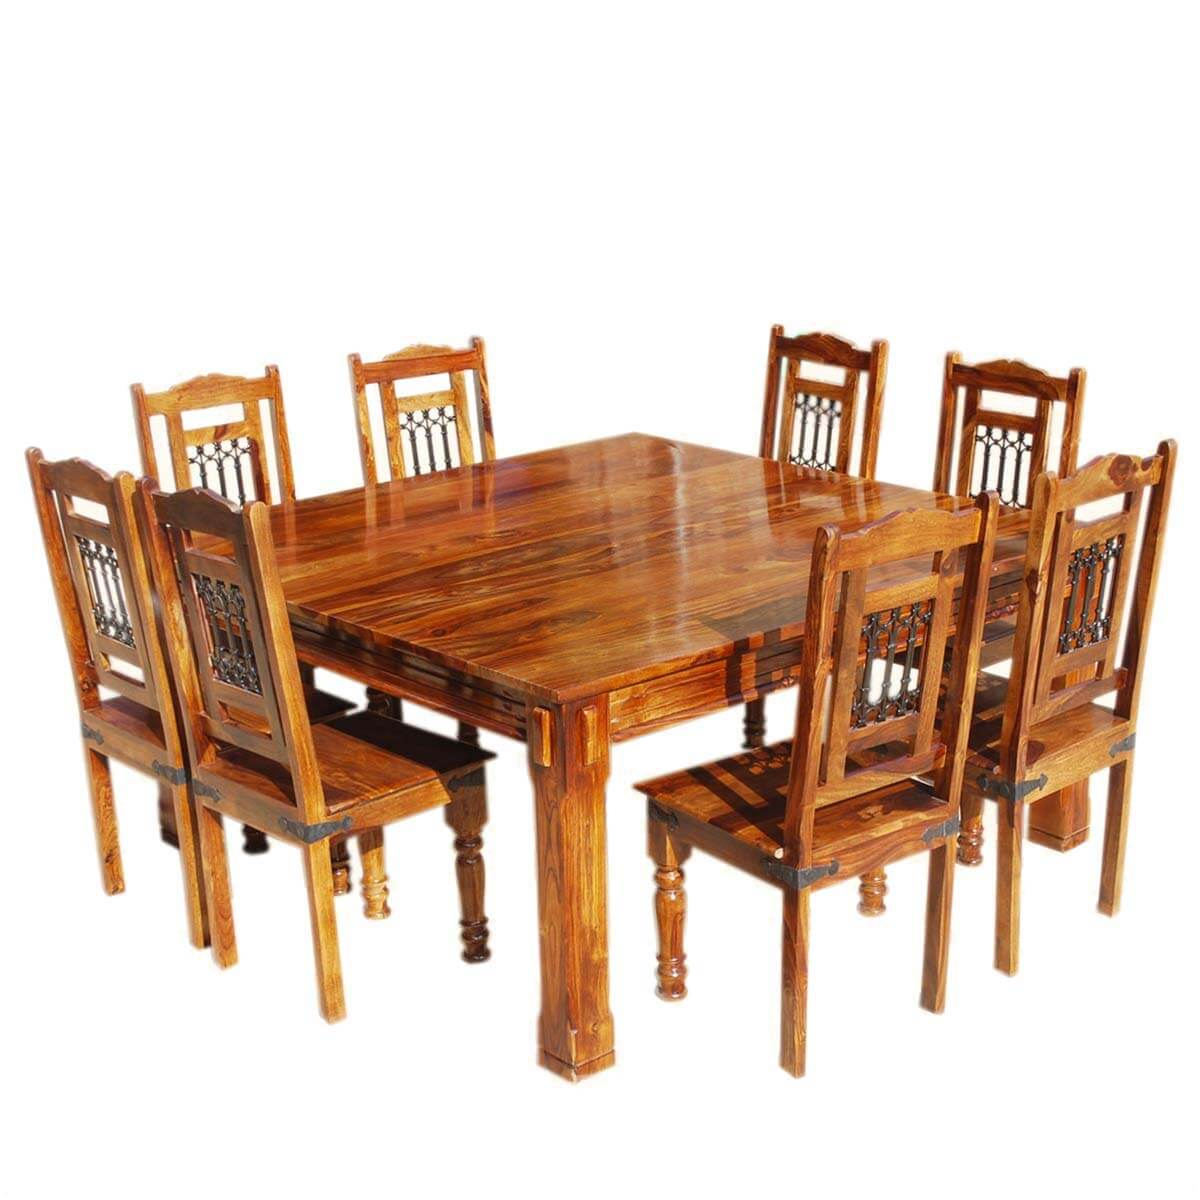 Wooden Dining Table Set: Solid Wood Rustic Square Dining Table Chairs Set